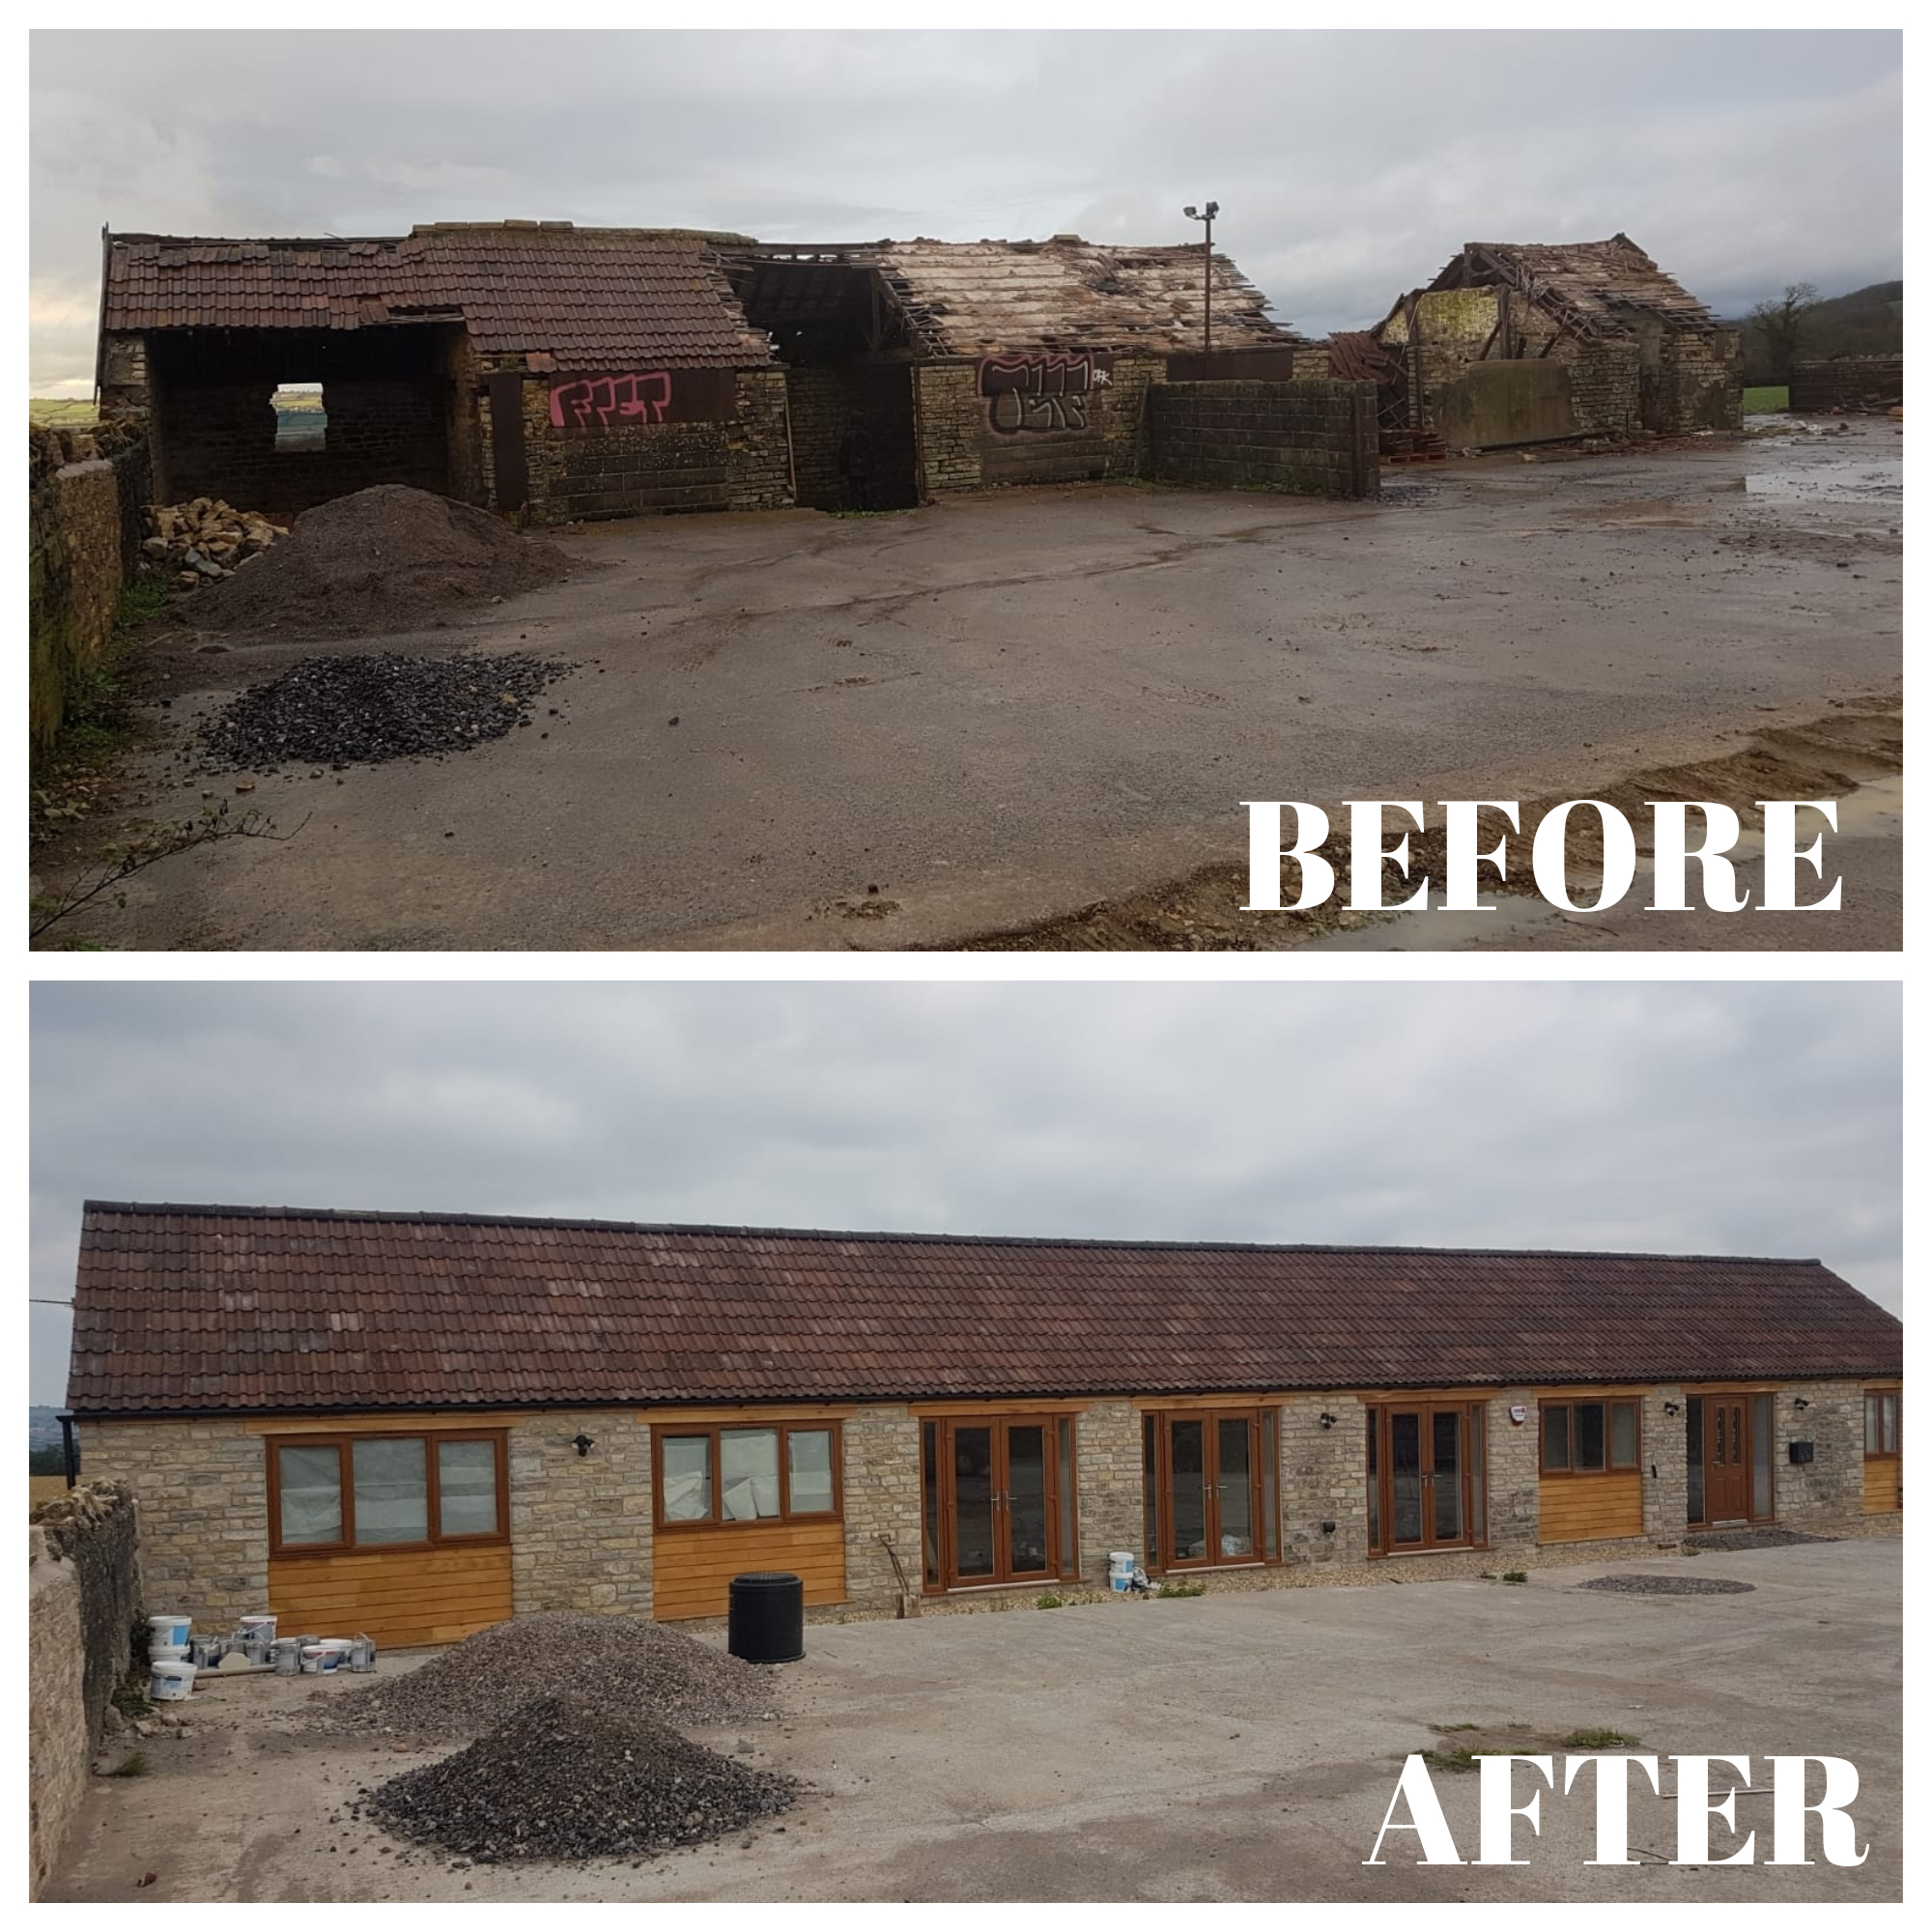 A recent renovation of a barn which involved a complete new roof